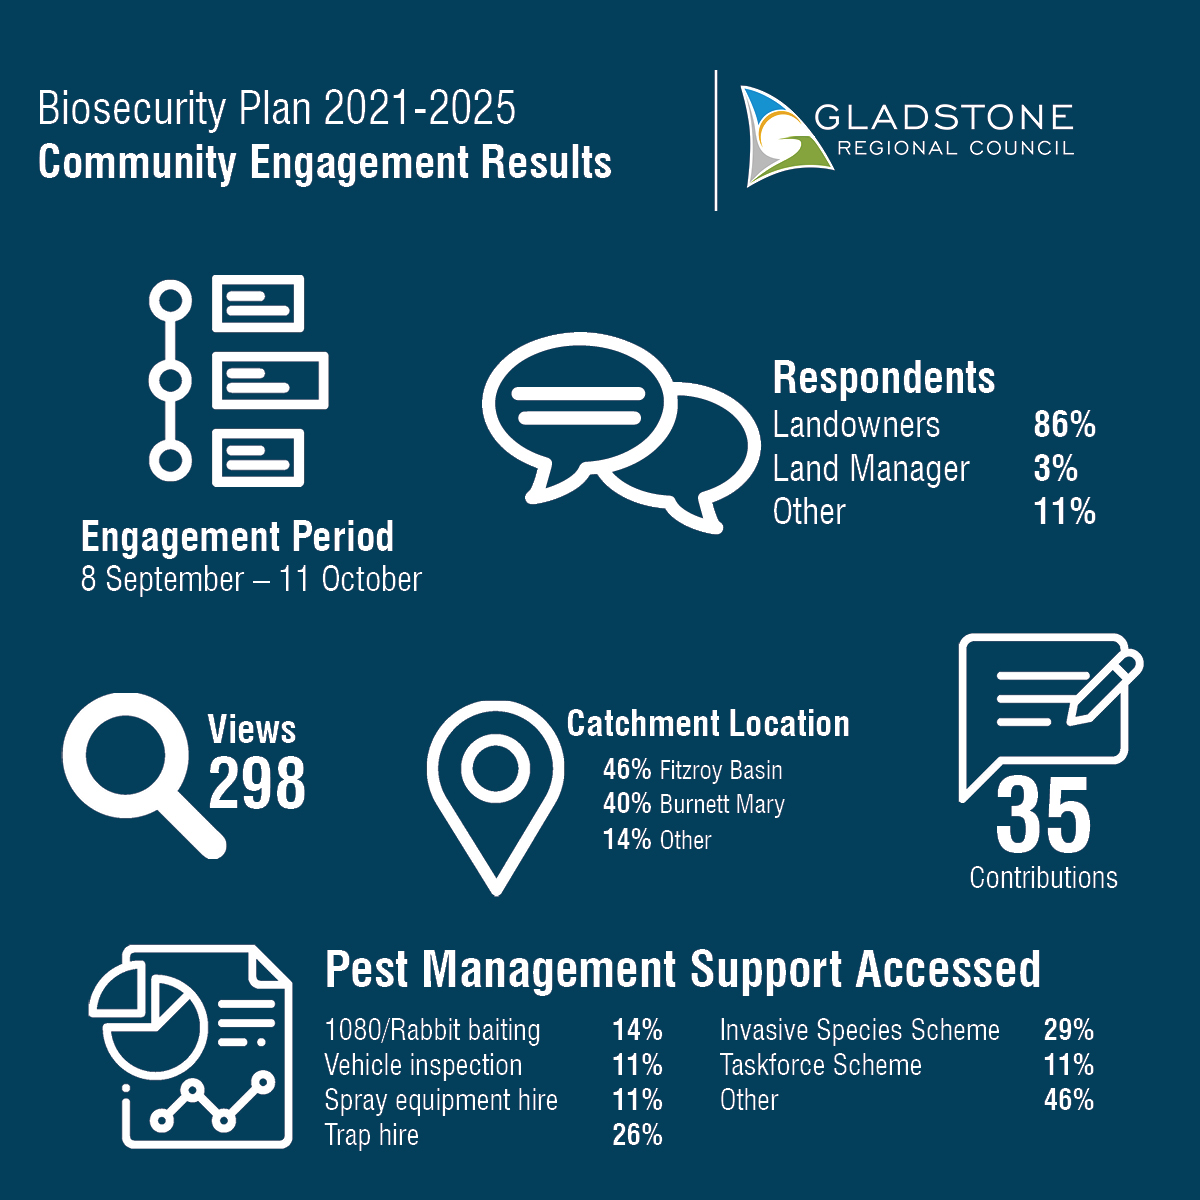 Biosecurity Plan Community Survey Results - 8 September to 11 October, 298 views and 35 responses